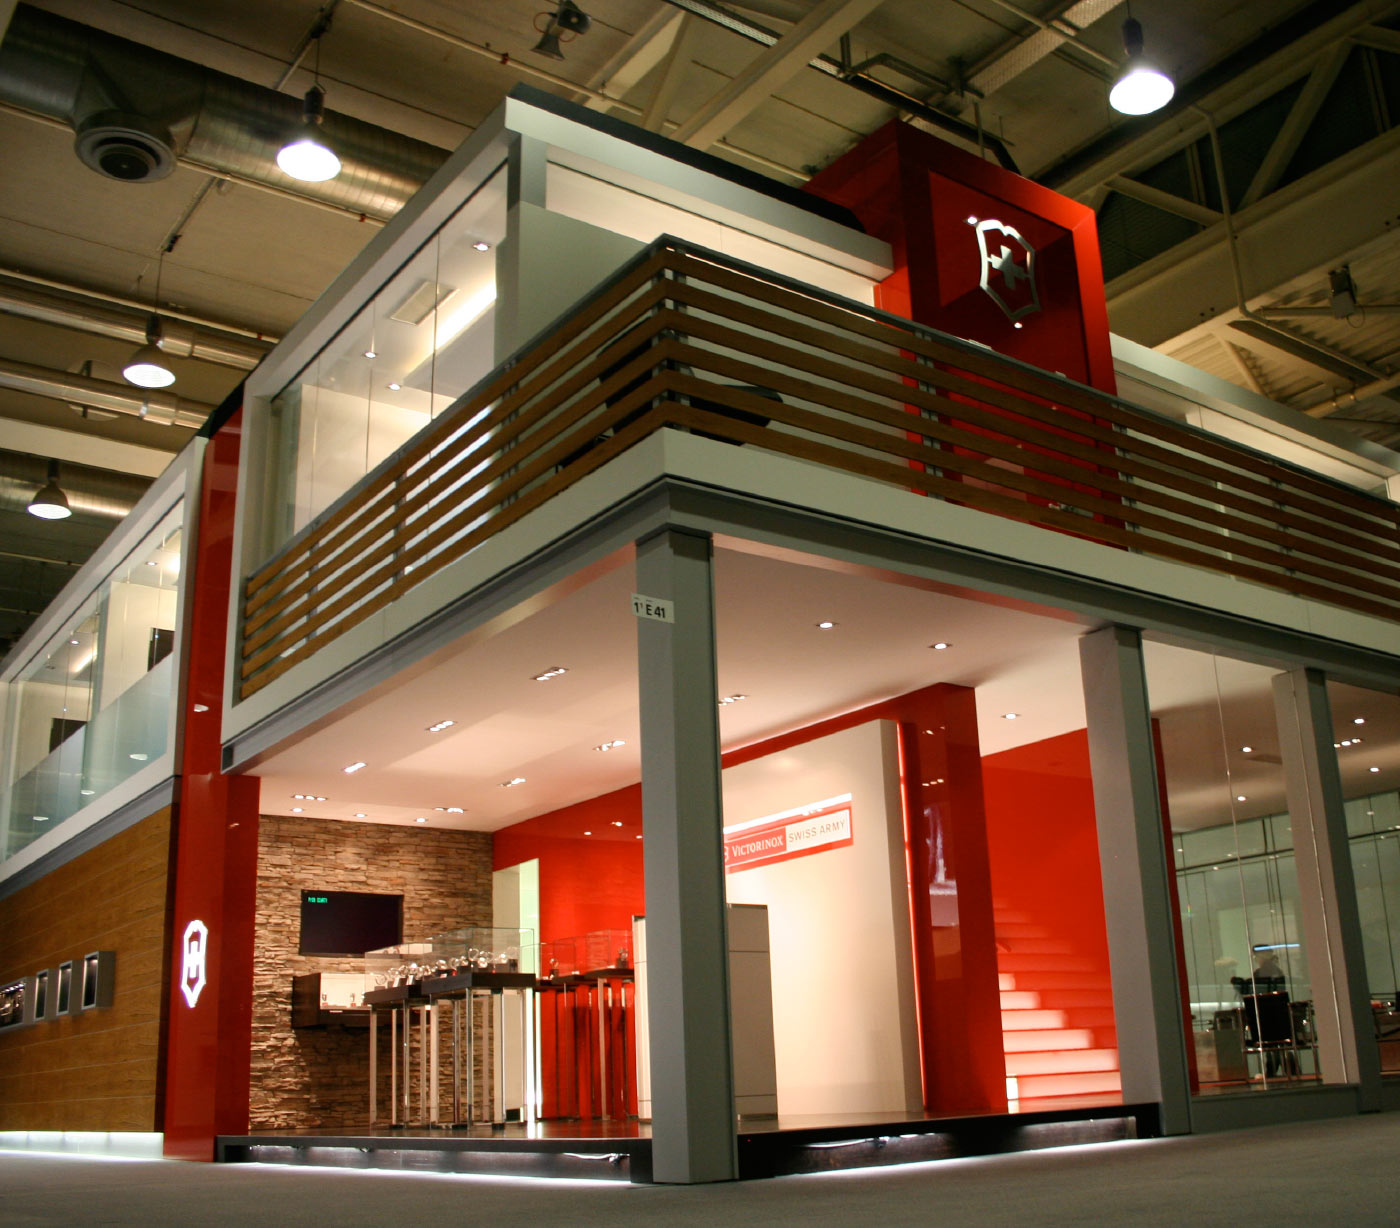 Victorinox / Swiss Army Trade Show Exhibit